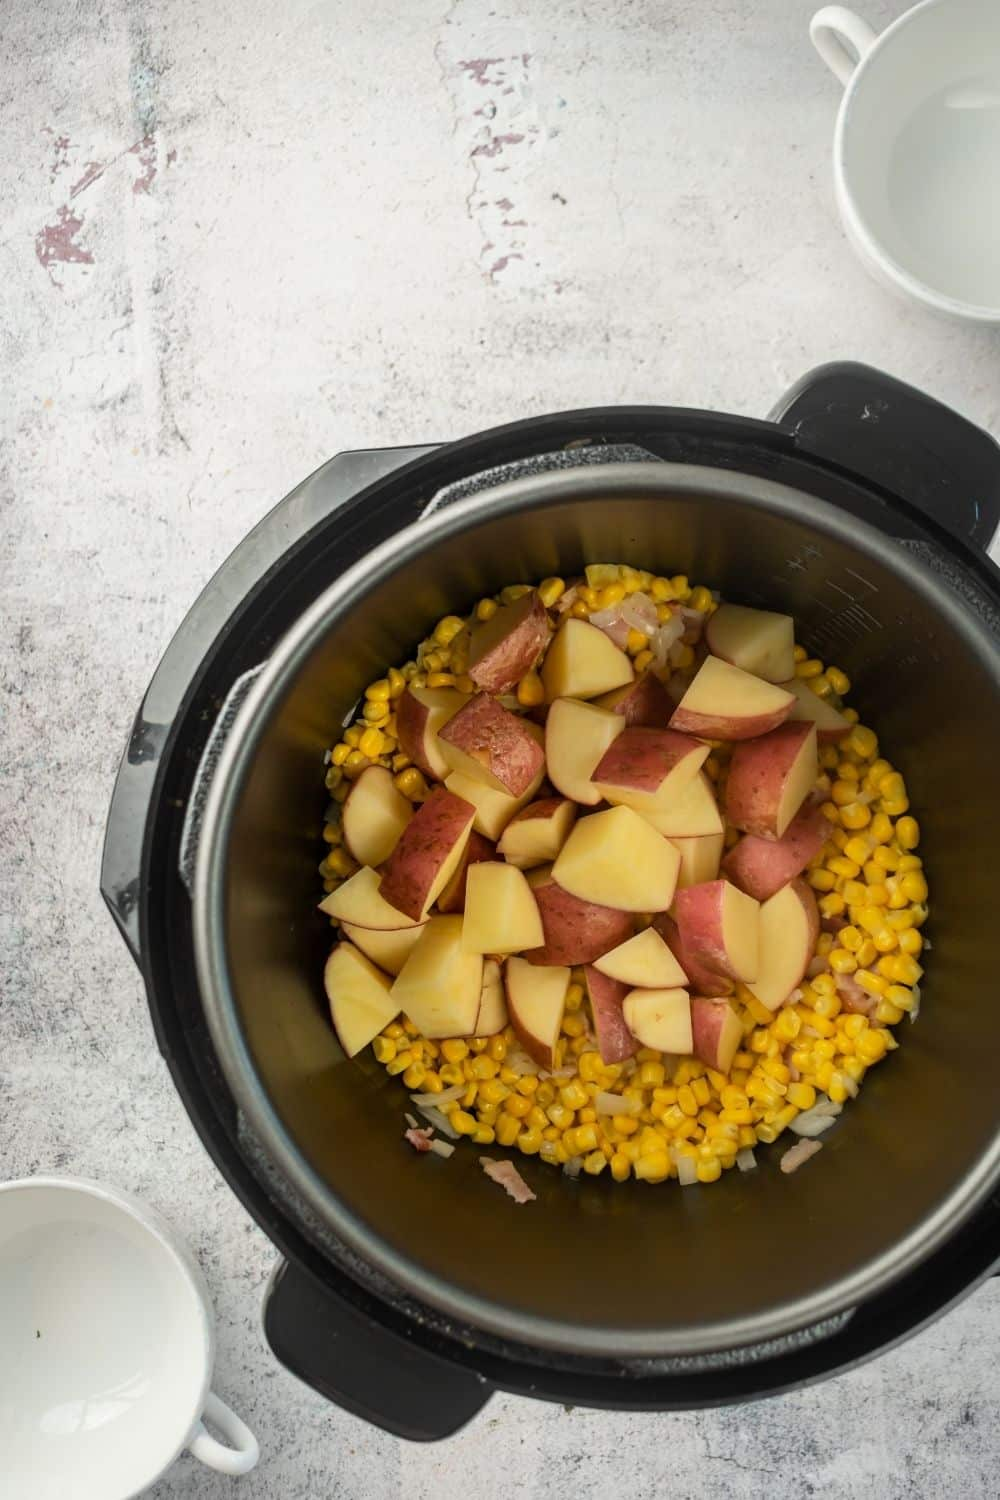 An instant pot on a white counter filled with corn and red potato pieces in it.